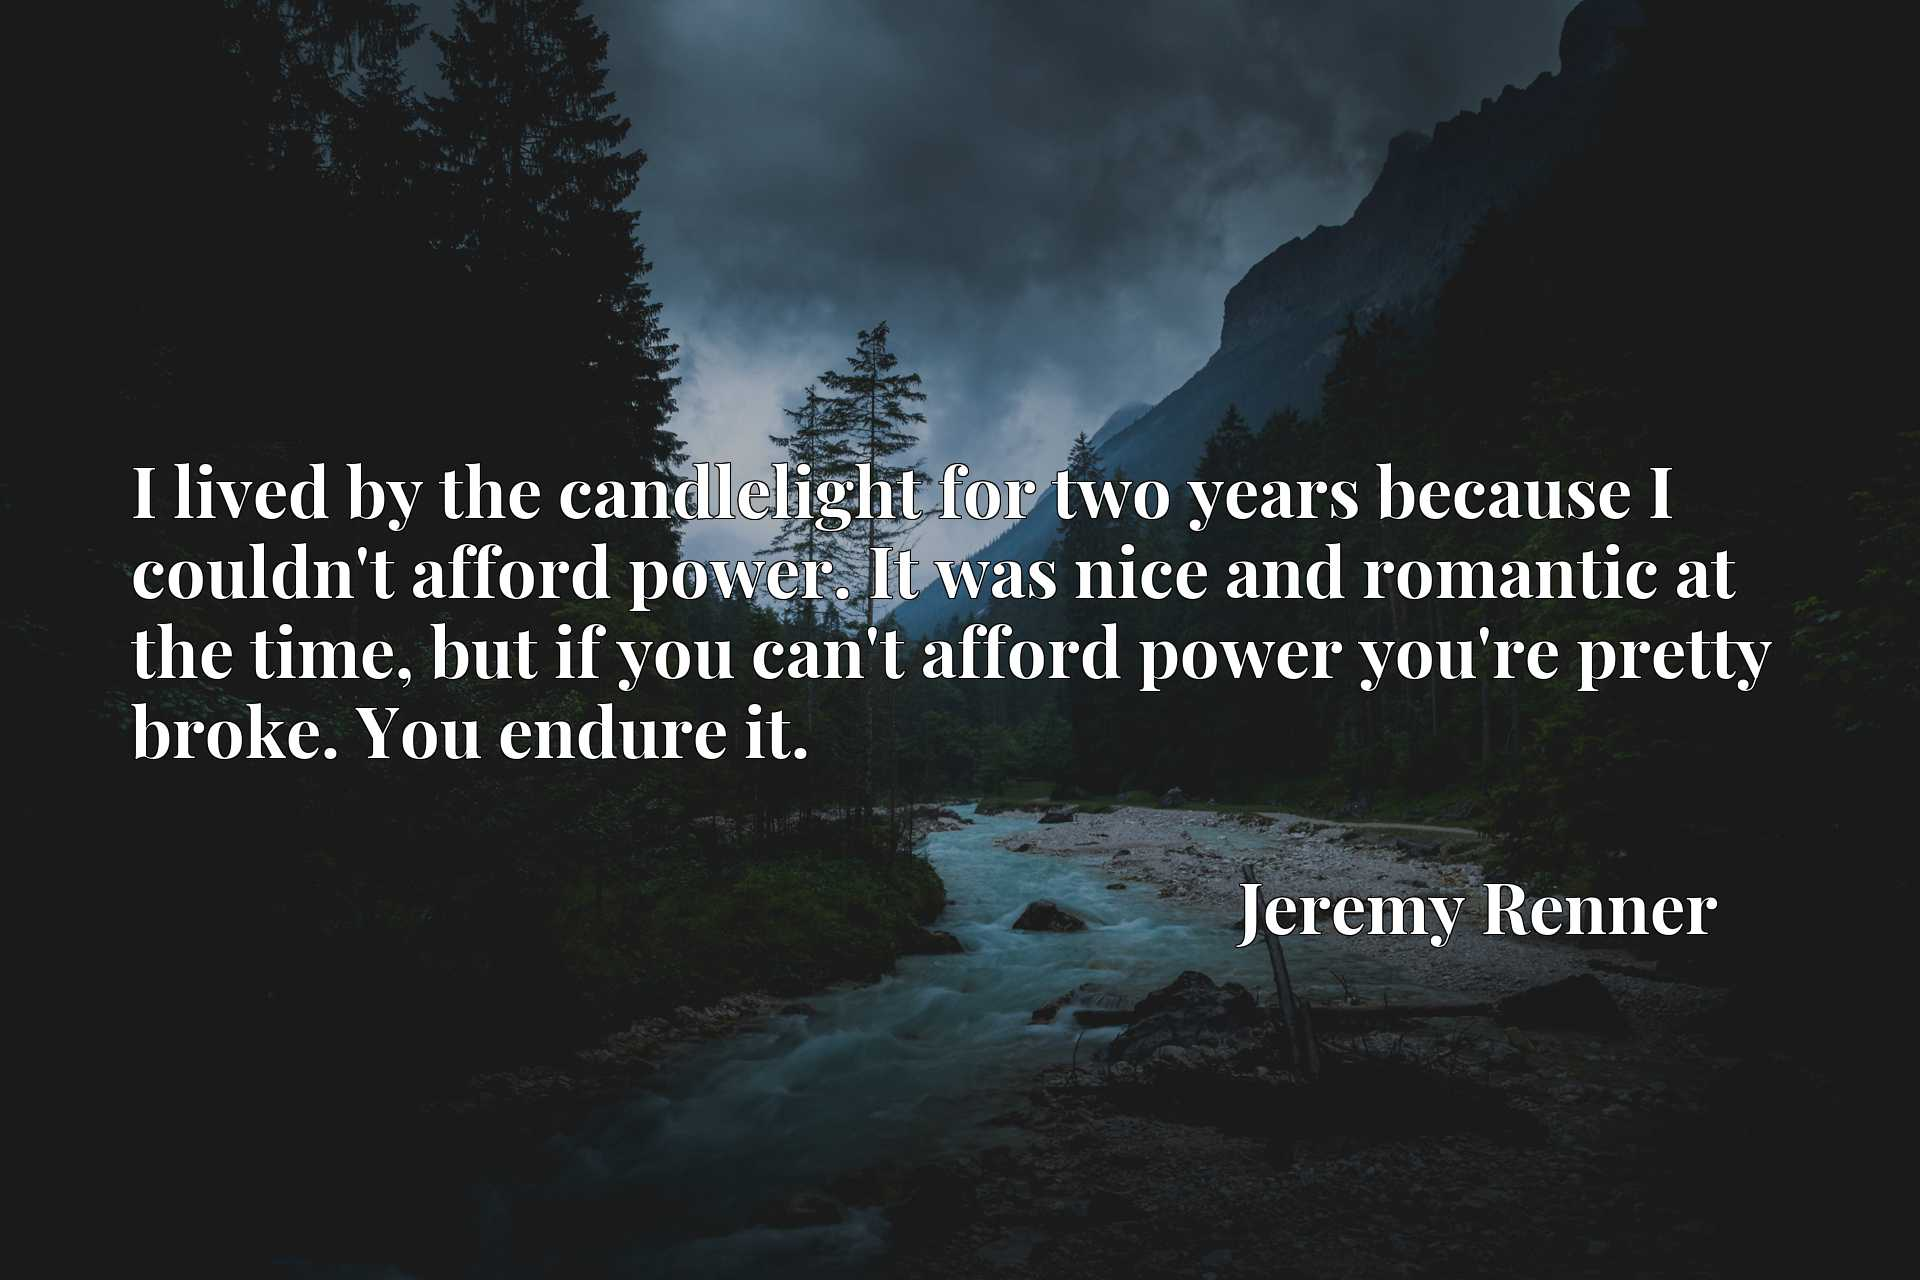 I lived by the candlelight for two years because I couldn't afford power. It was nice and romantic at the time, but if you can't afford power you're pretty broke. You endure it.